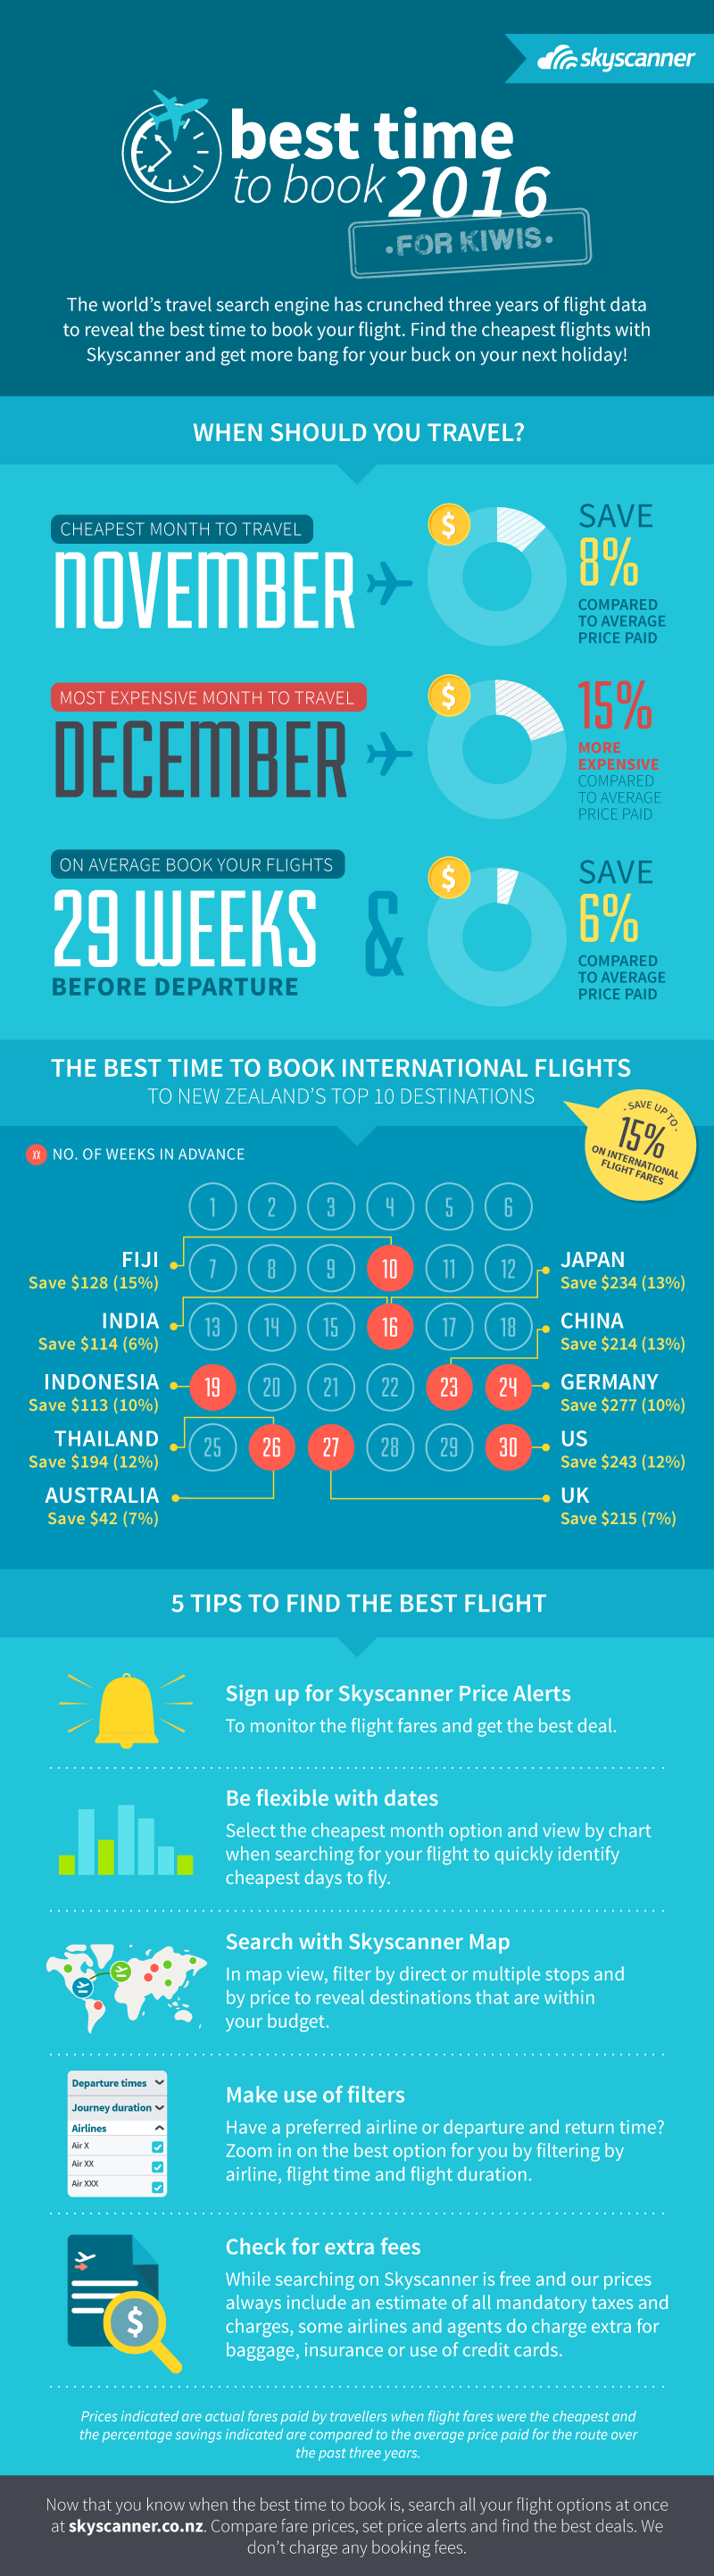 Best Time to Book 2016 NZ - Infographic